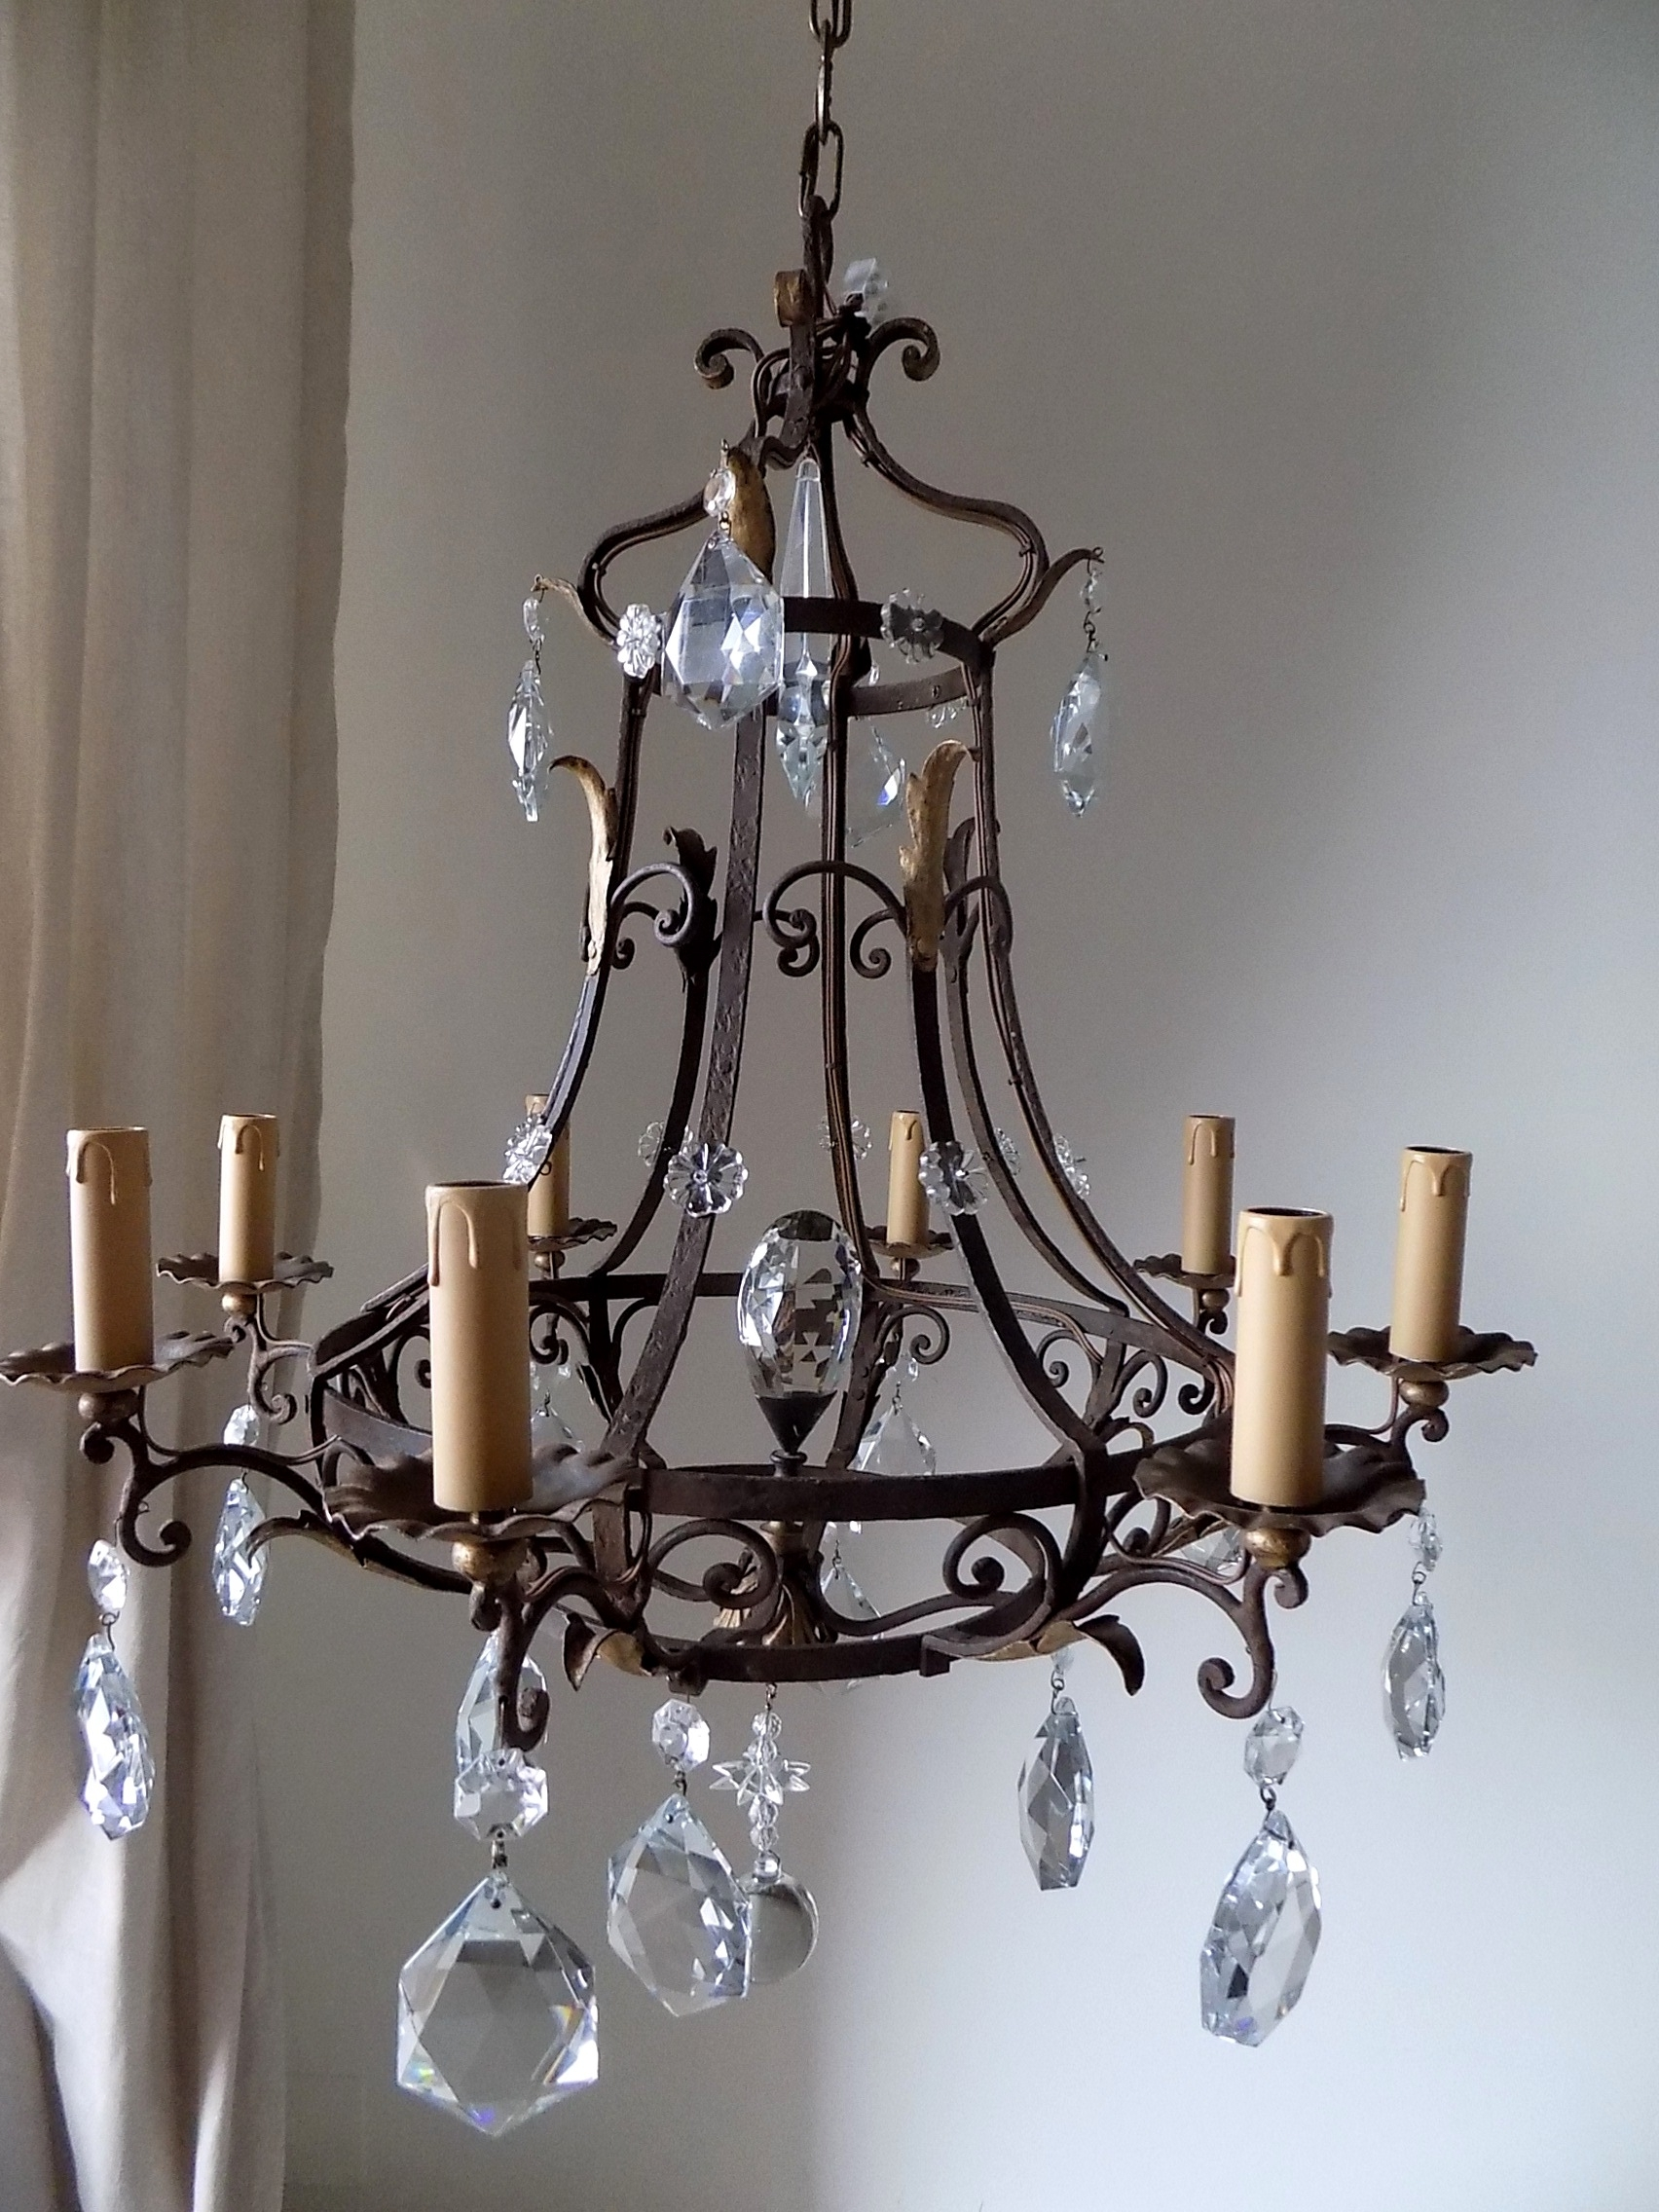 Famous Wrought Iron Chandeliers Intended For Antique French Massive Hand Forged Wrought Iron Chandelier – Lorella Dia (View 2 of 15)